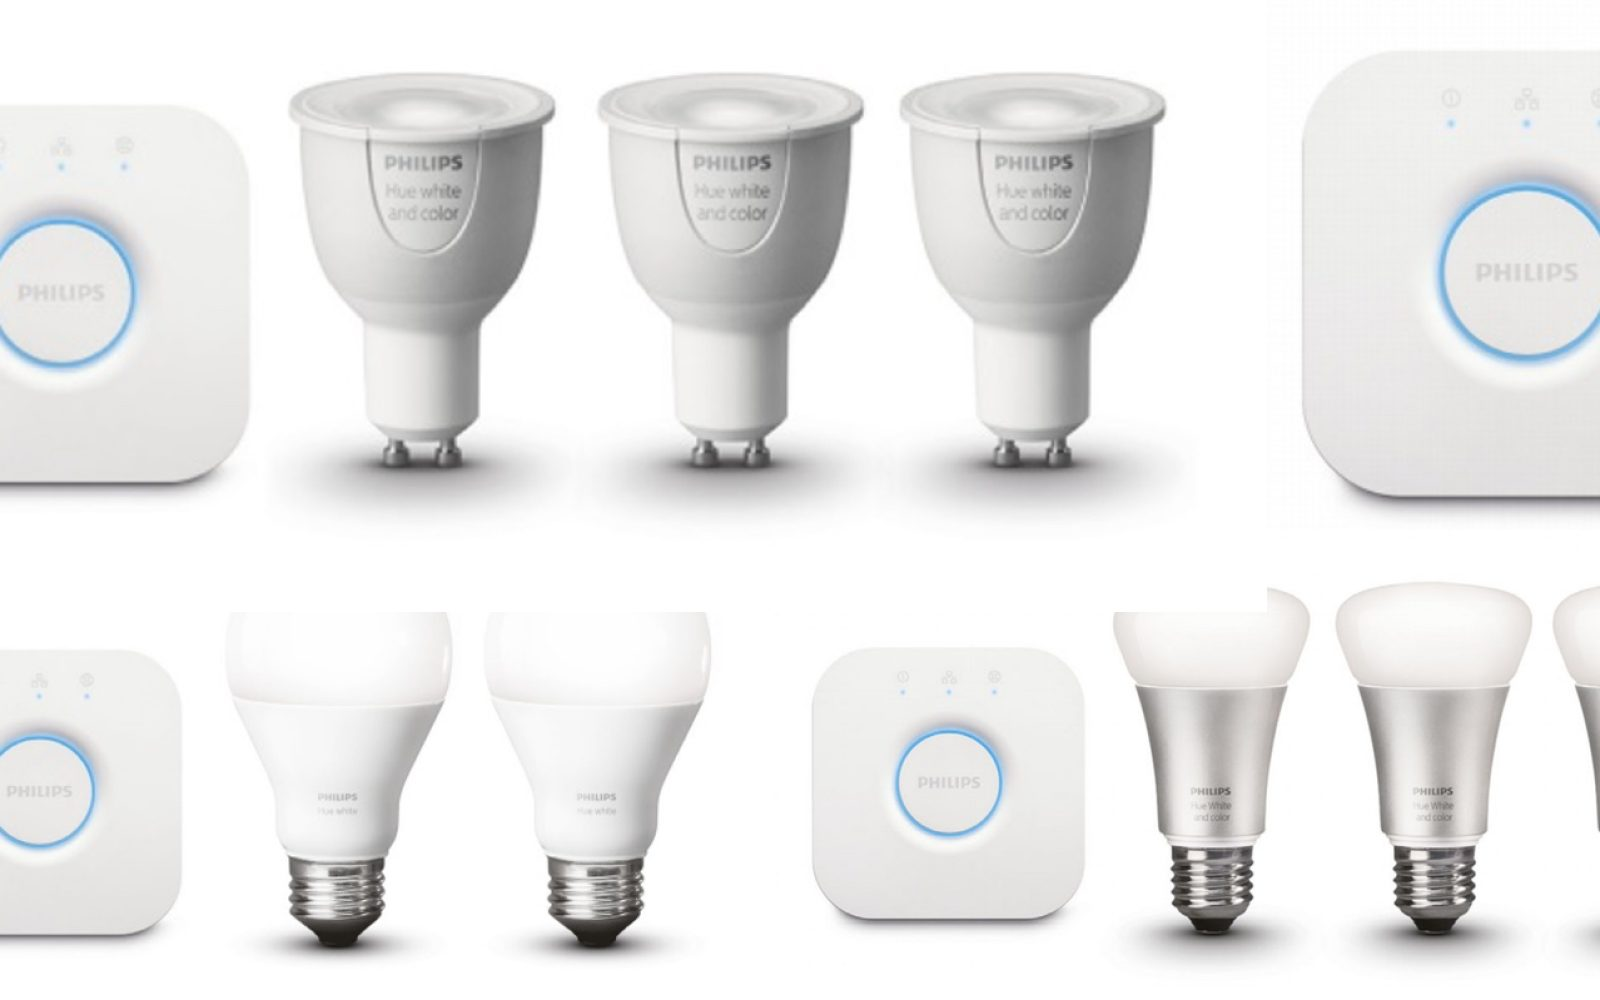 New HomeKit-enabled Philips Hue lights and bridge box already